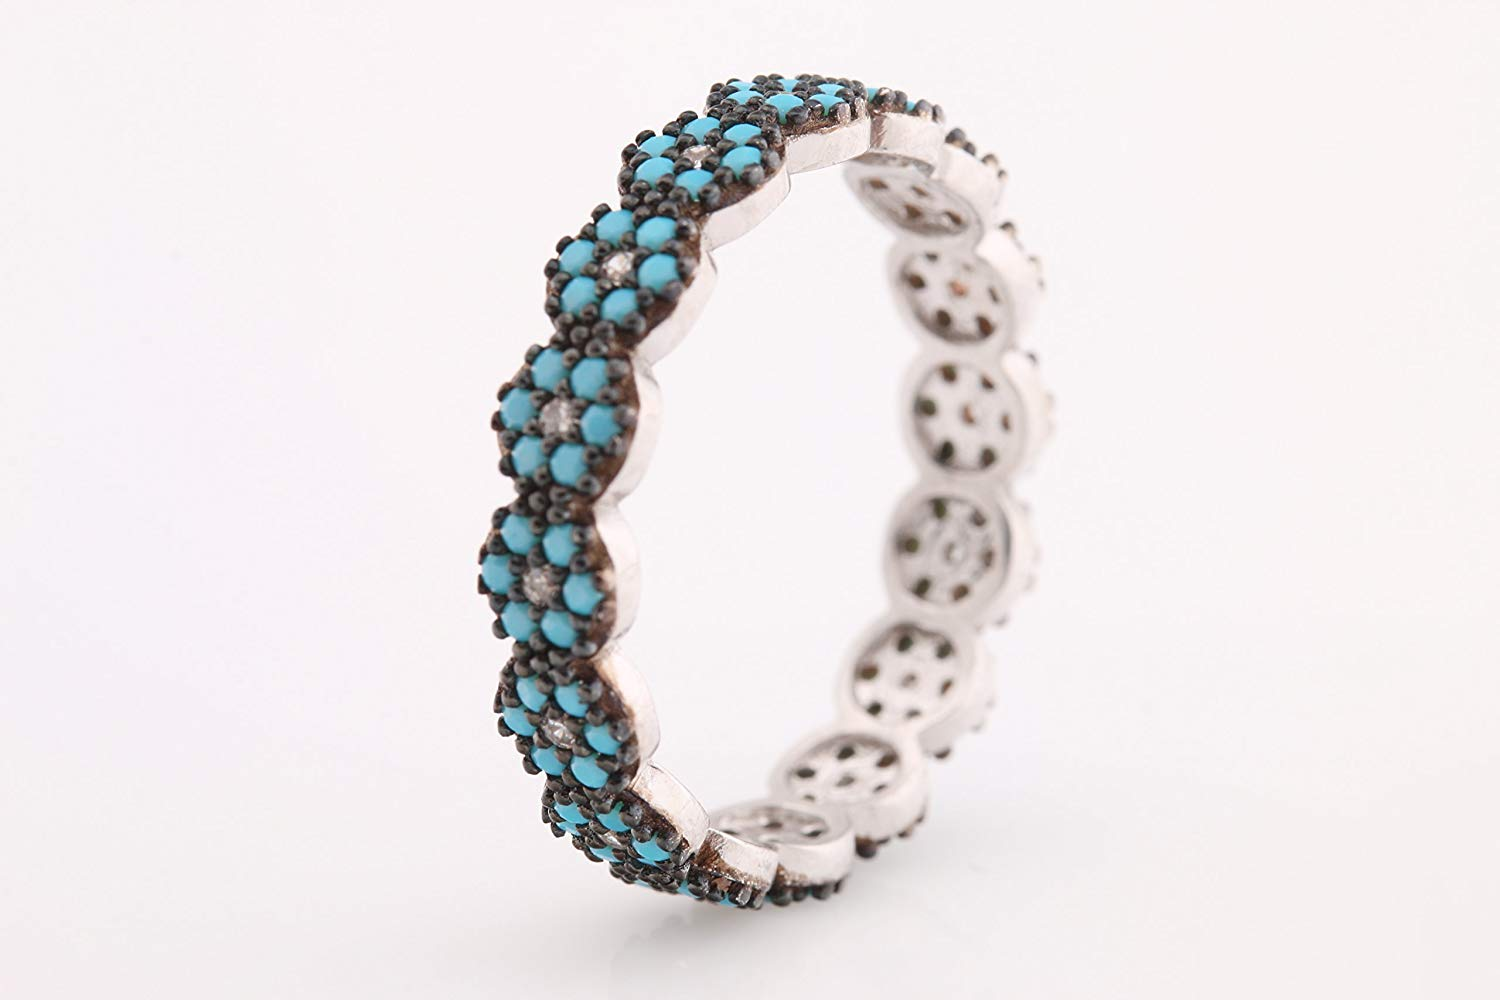 Nathis Turquoise December Birthstone Ring with Twisted Band